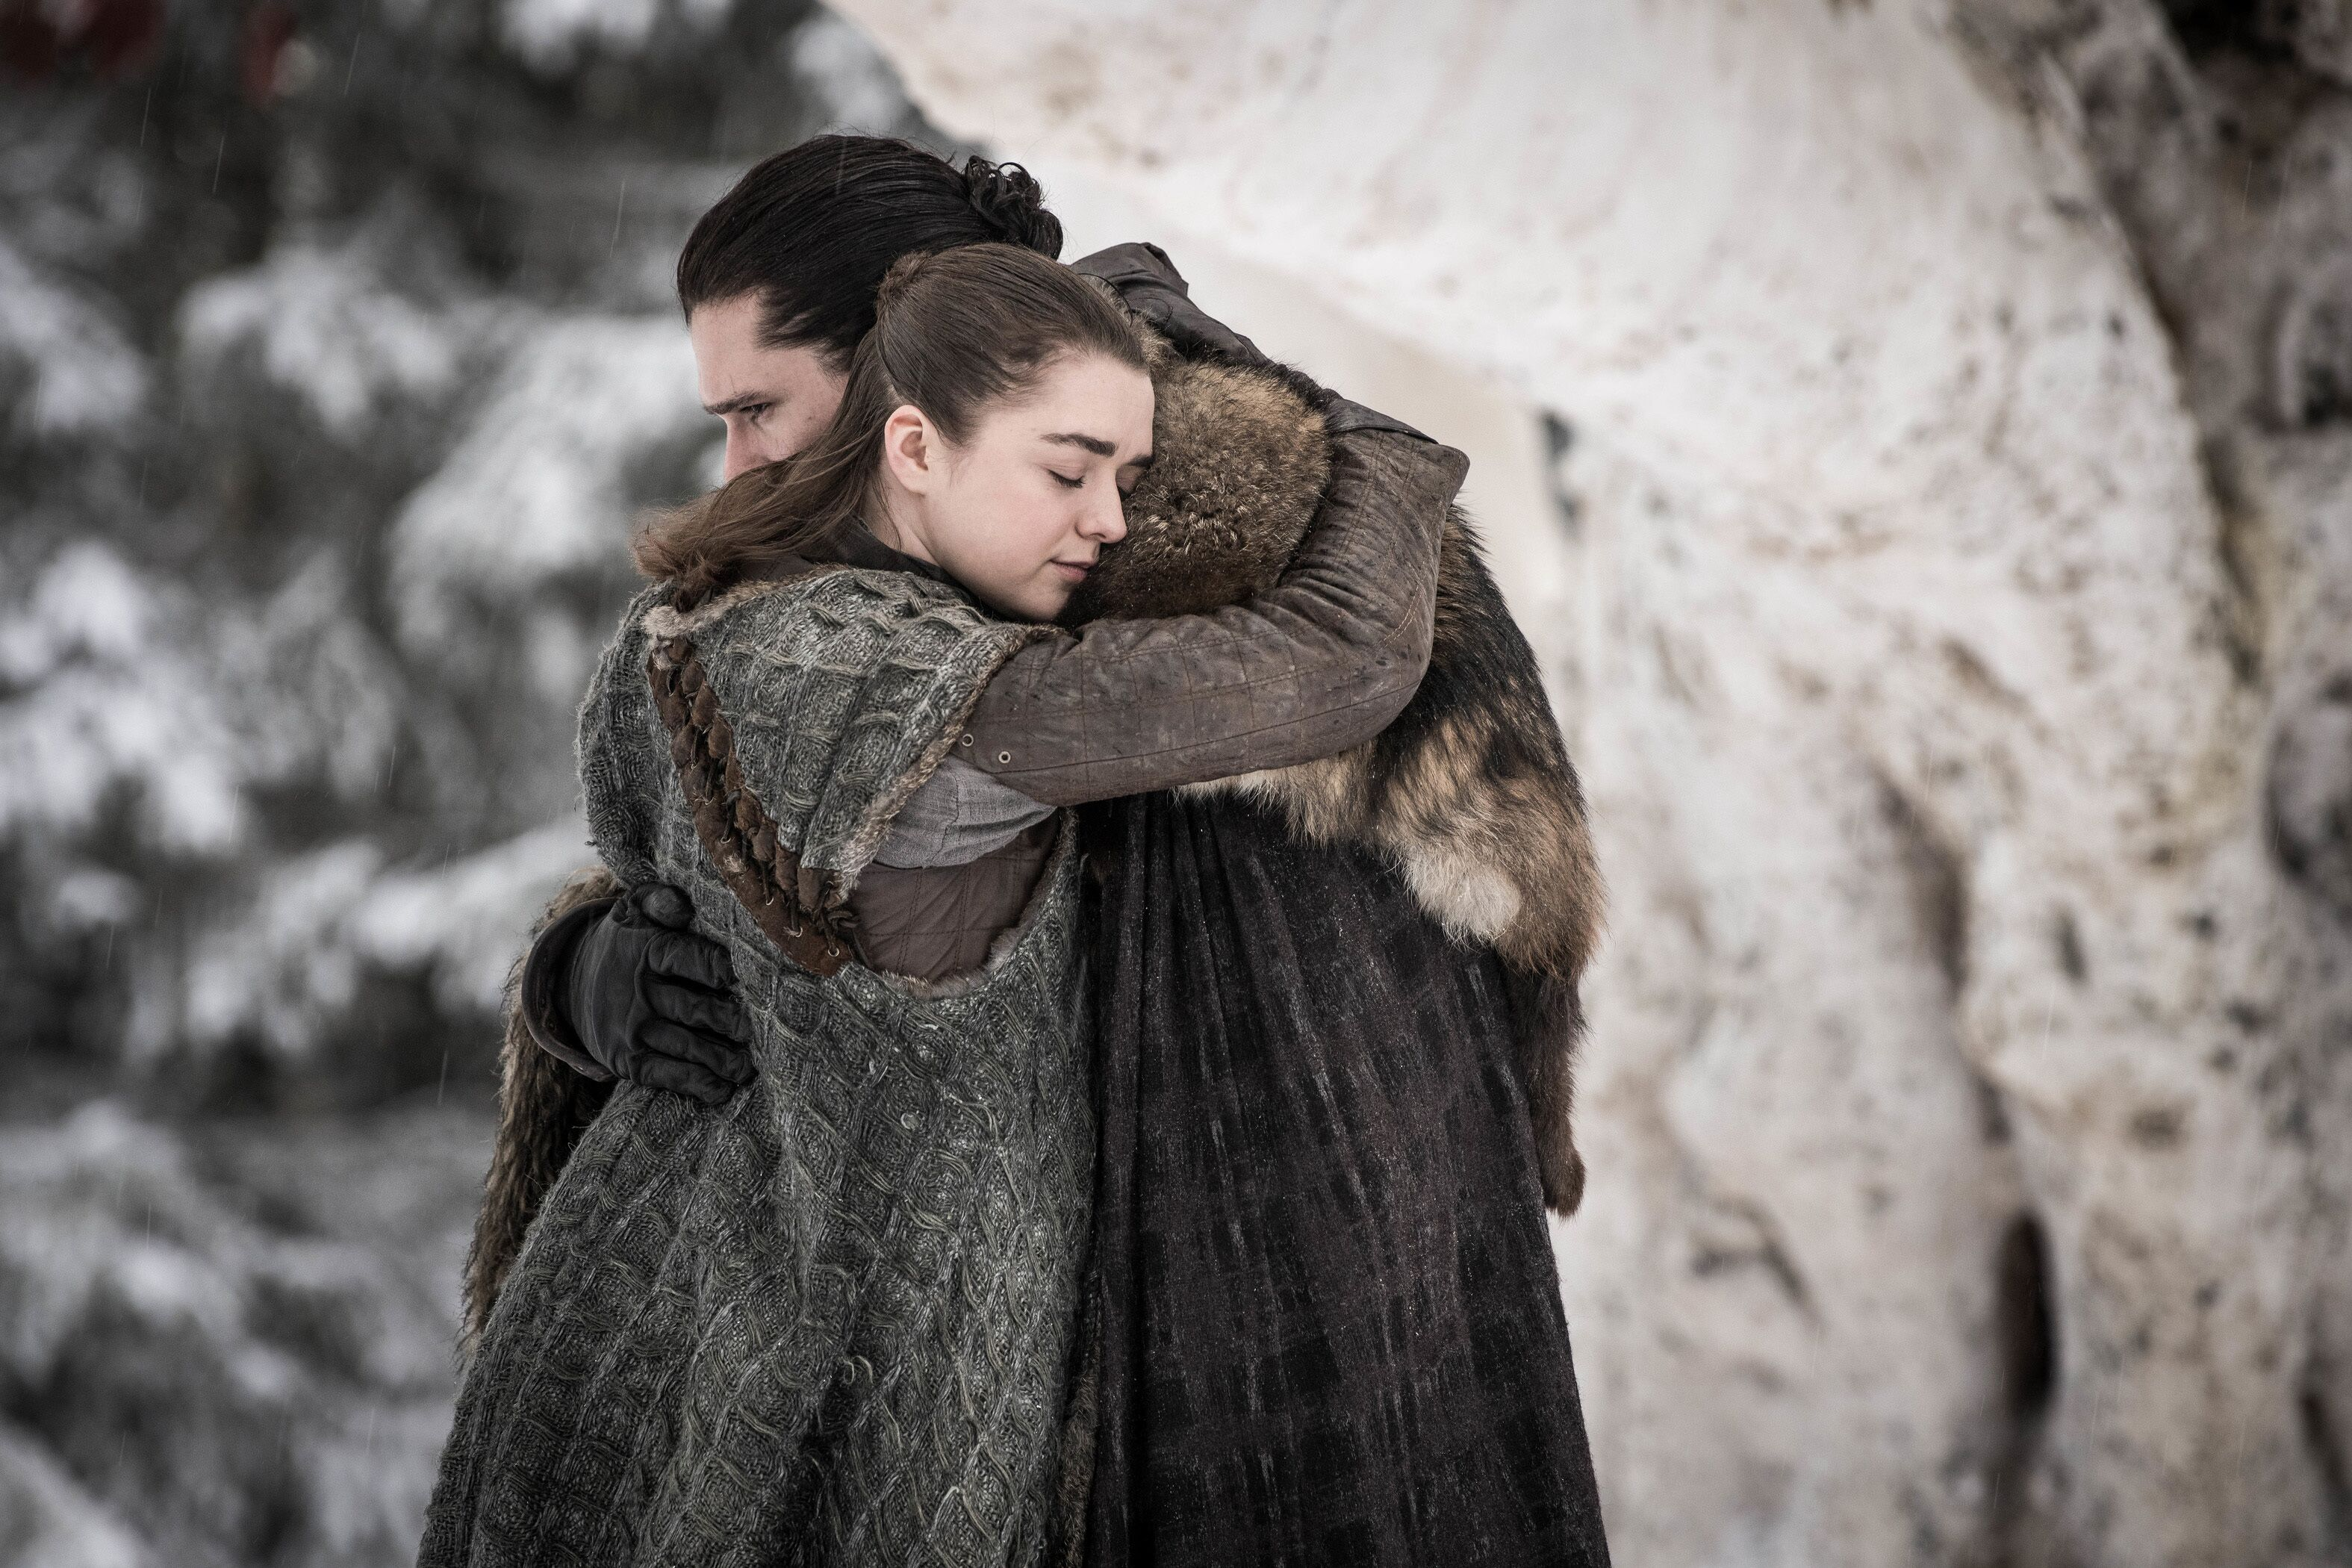 Your Game of Thrones at the 2019 Emmys preview